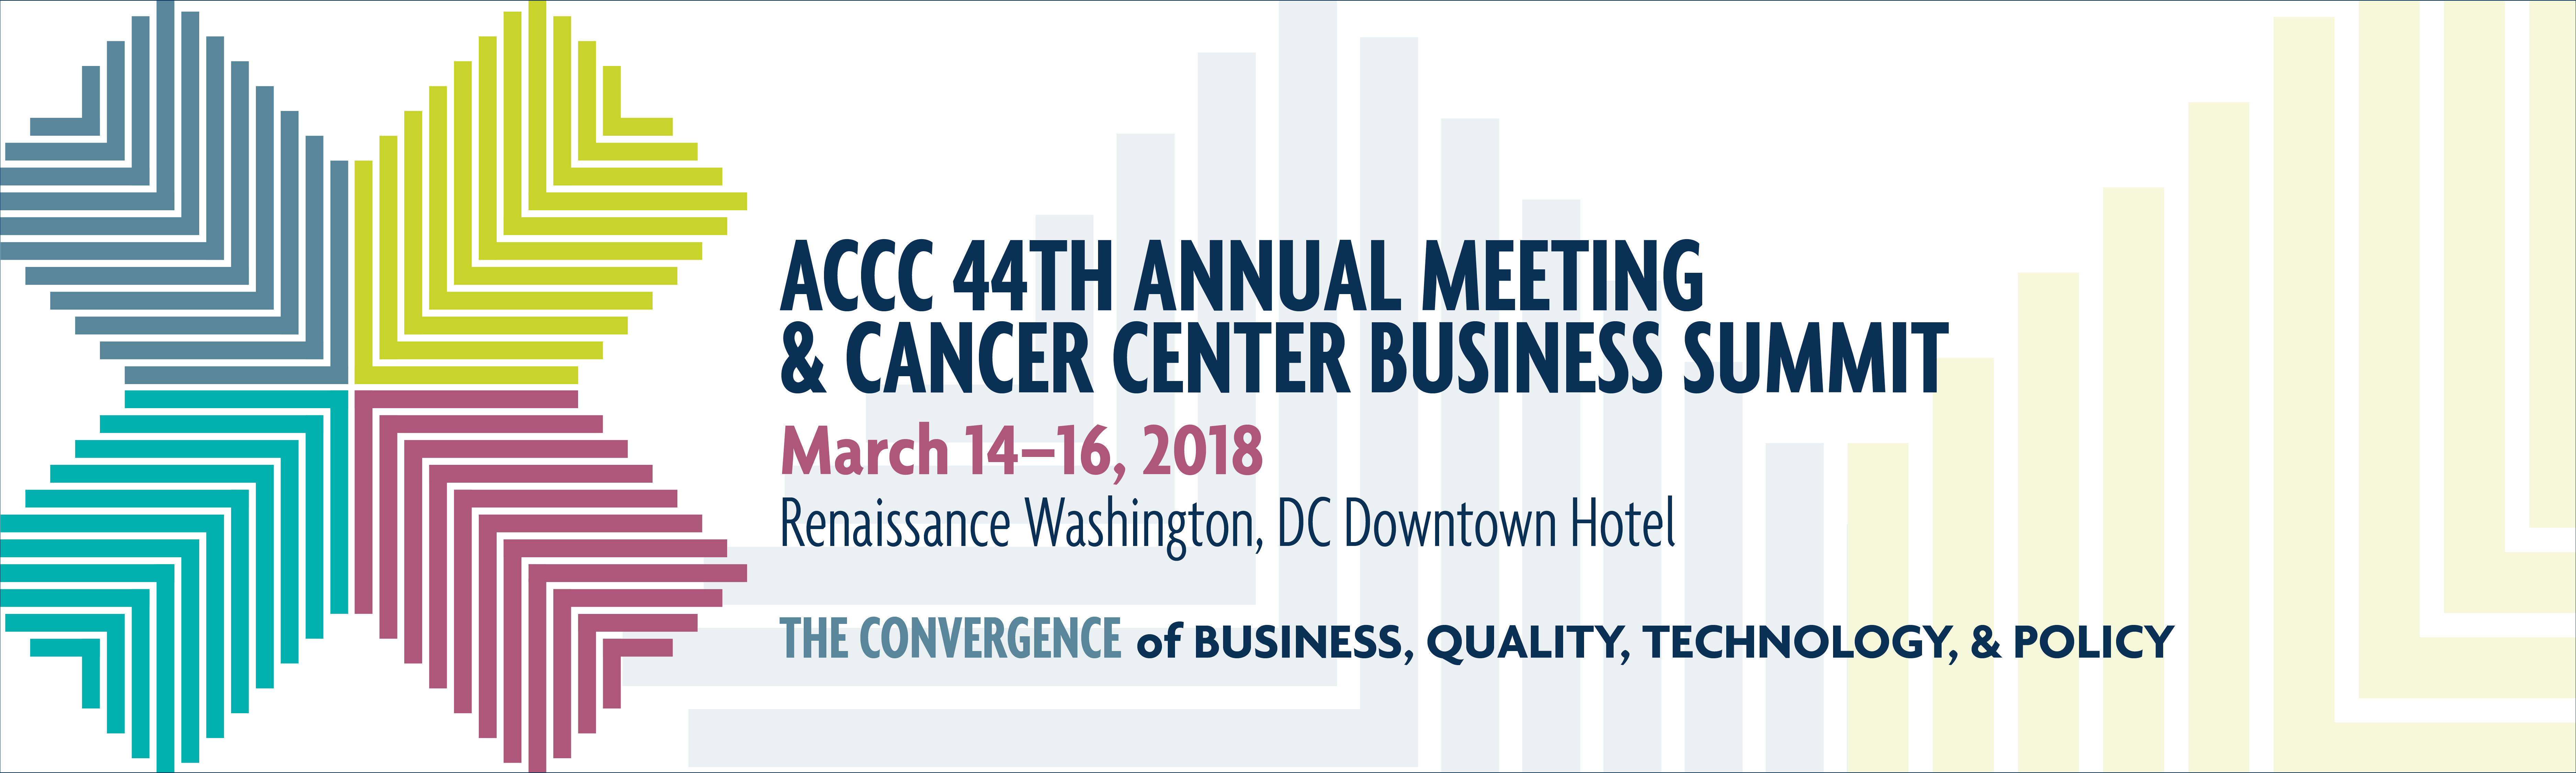 ACCC 44 National Meeting & Cancer Center Business Summit